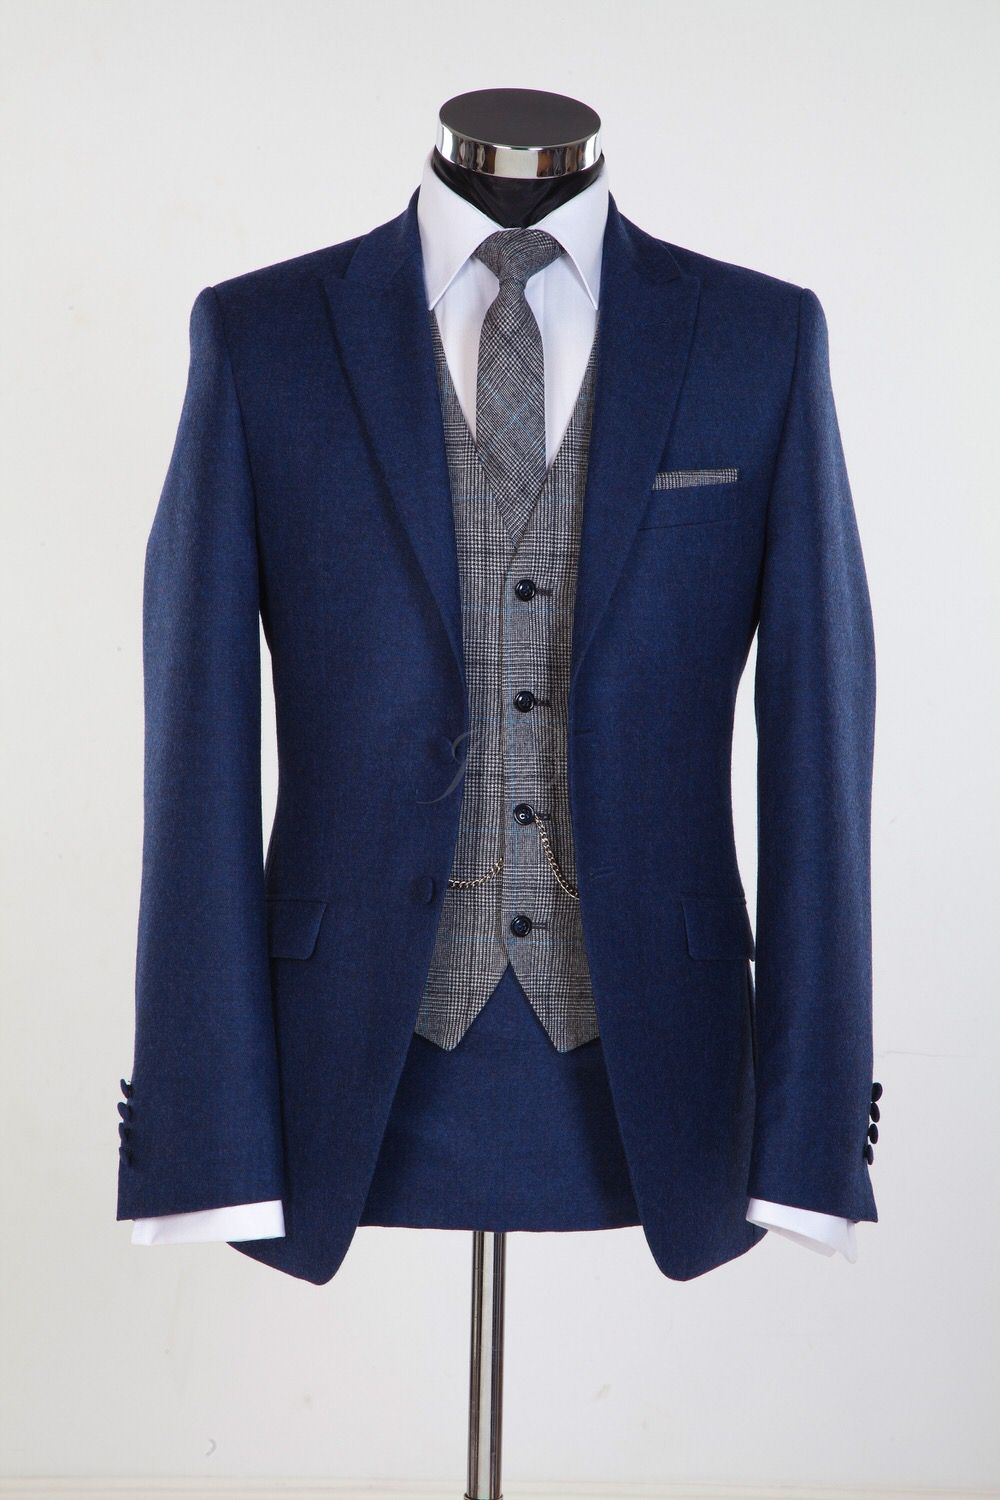 e8da7f12cd5e ... Outfitters - Wedding Trends For Grooms For 2015 From Gentlemens  Outfitters Jack Bunneys Including Flannel